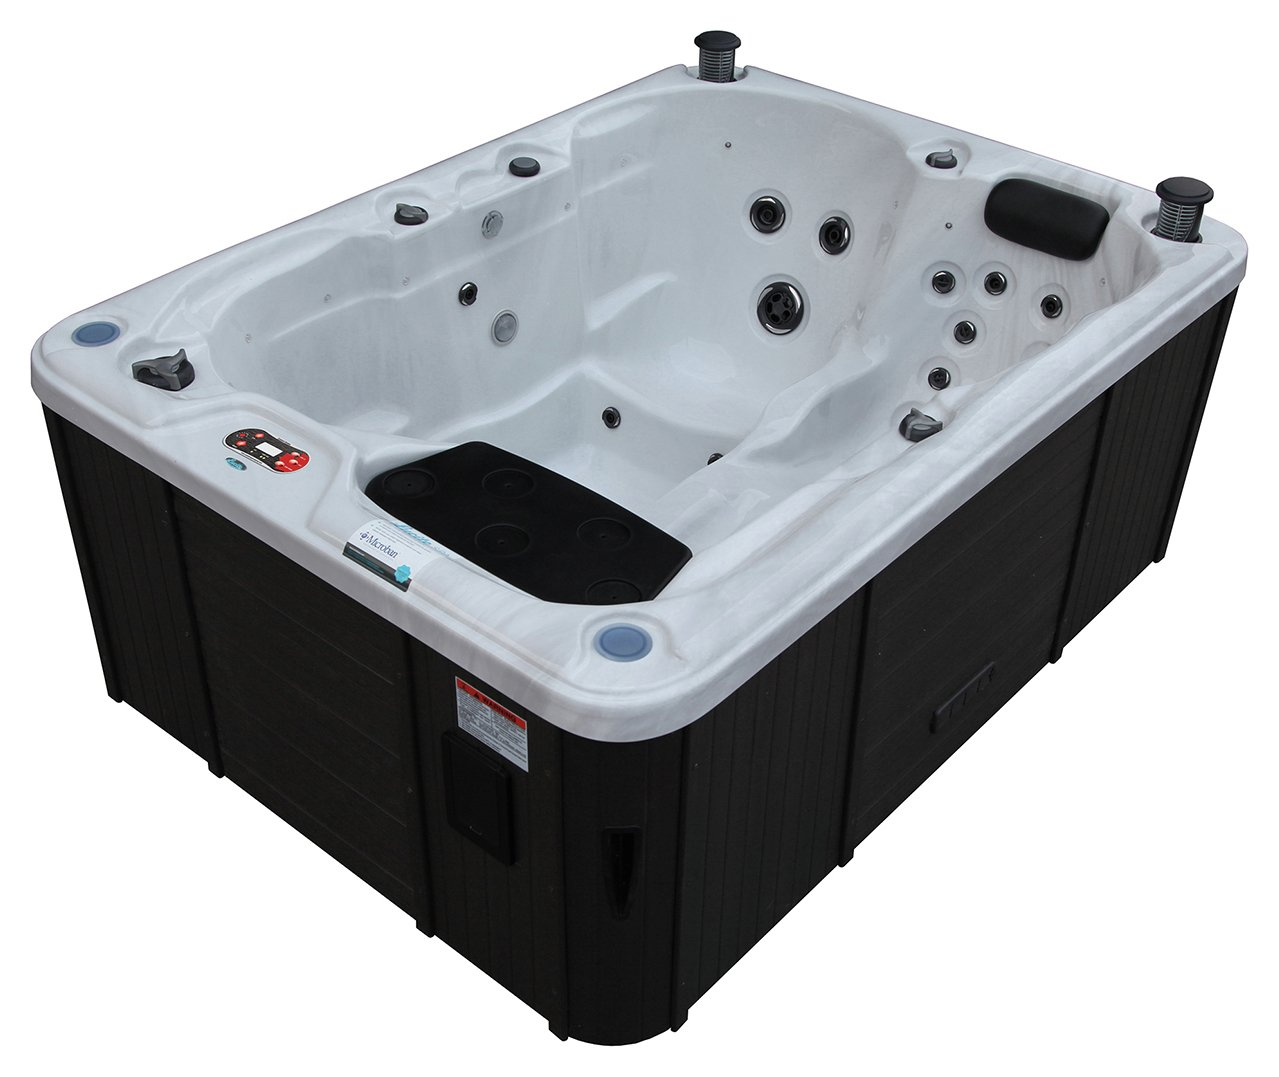 Canadian Spa Co. Quebec Plug & Play 29 Jet 3 Person Hot Tub. from Canadian Spa Company